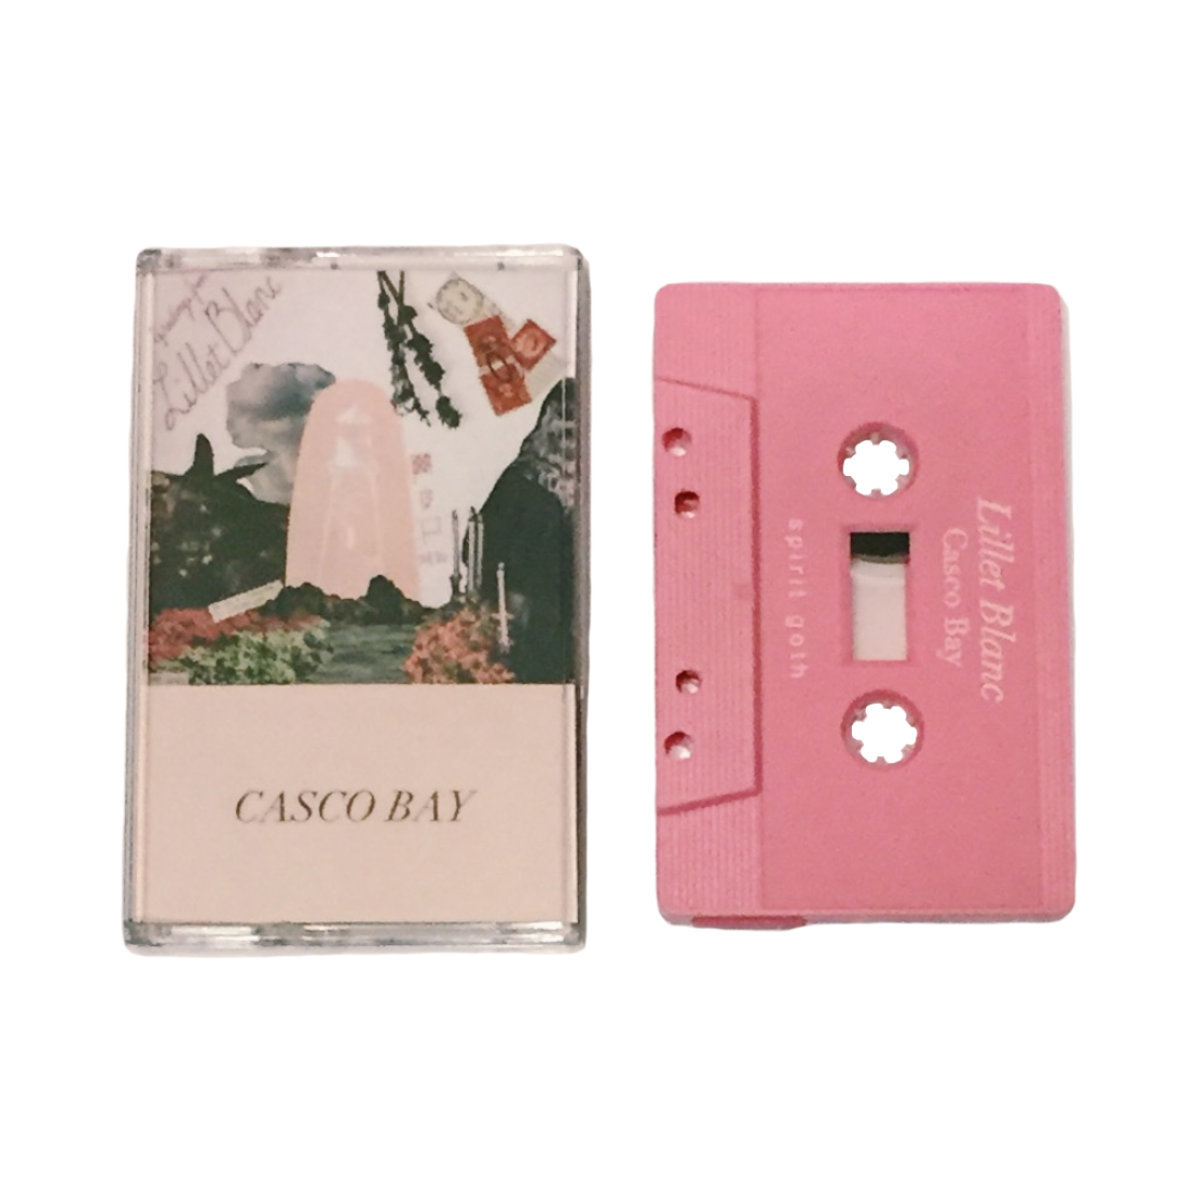 Lillet Blanc / Casco Bay(100 Ltd Cassette)